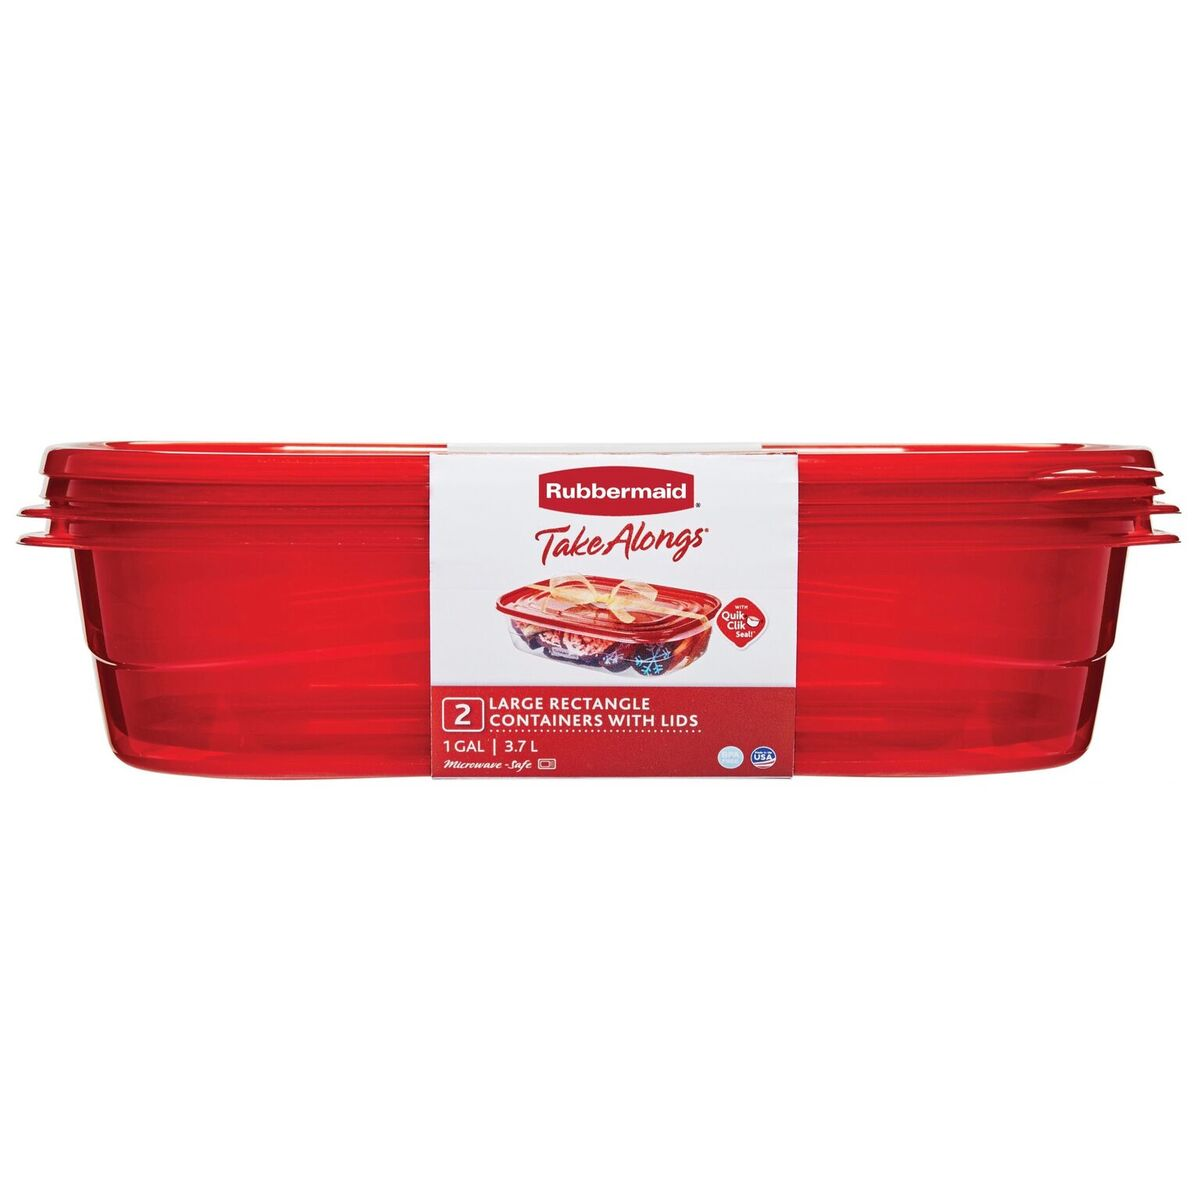 Rubbermaid TakeAlongs Large Rectangular Food Storage Container, 1 Gallon, 2-Pack, Red